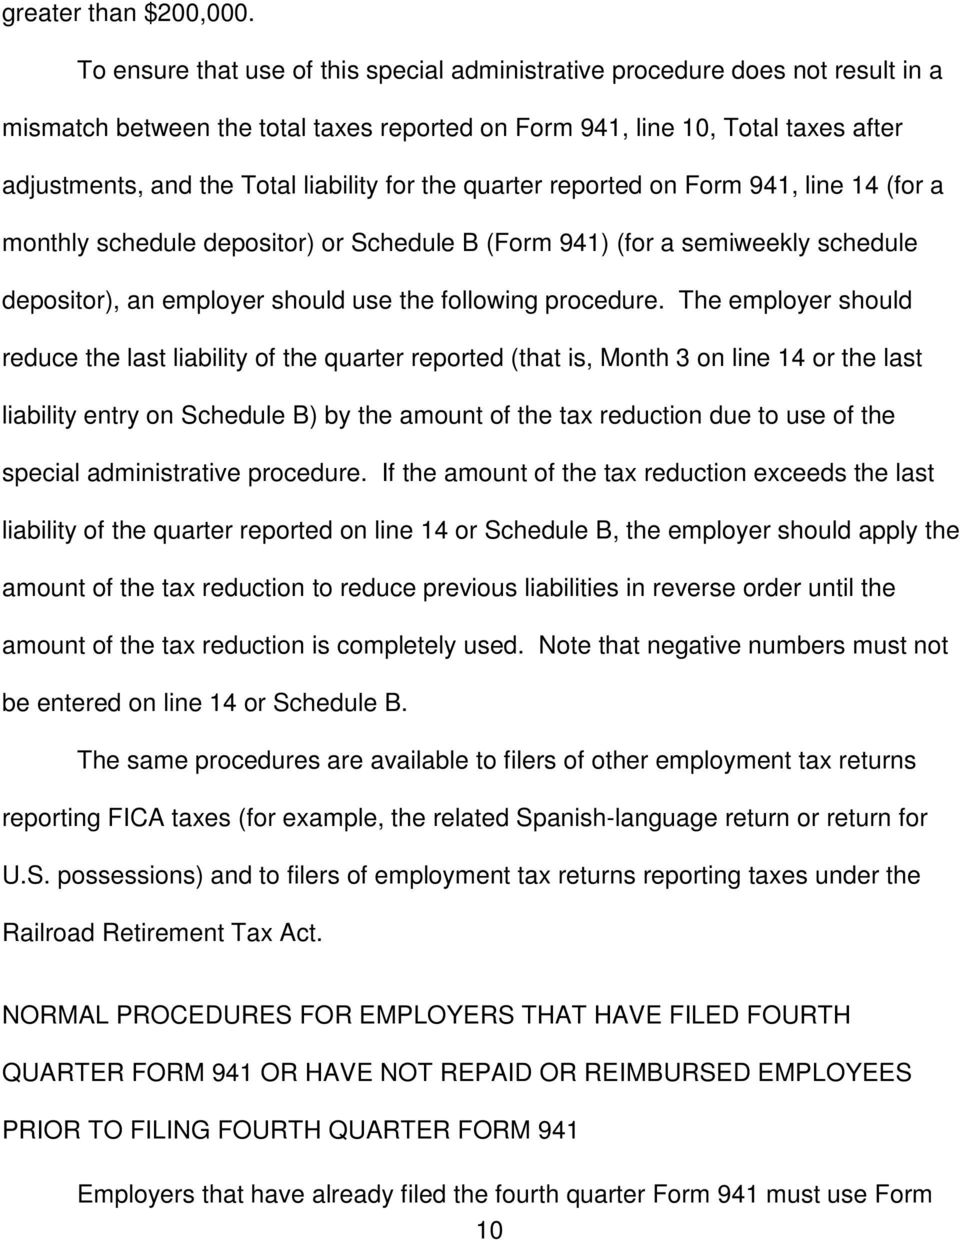 for the quarter reported on Form 941, line 14 (for a monthly schedule depositor) or Schedule B (Form 941) (for a semiweekly schedule depositor), an employer should use the following procedure.